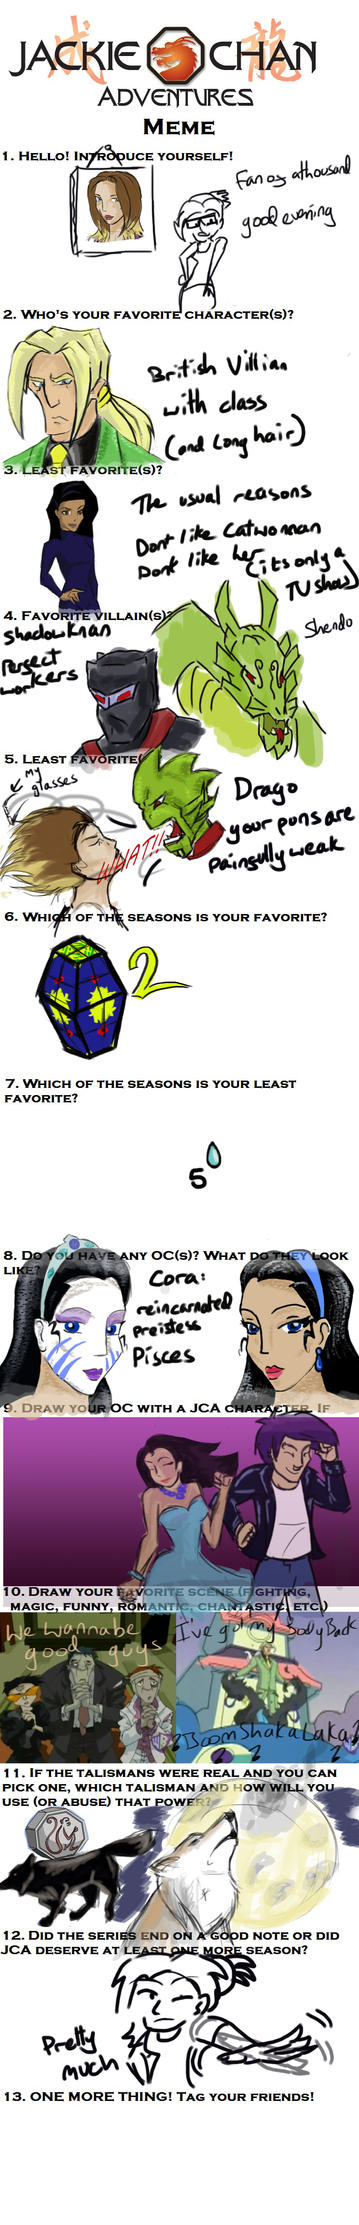 Jackie Chan Adventures meme by fan-of-a-thousand